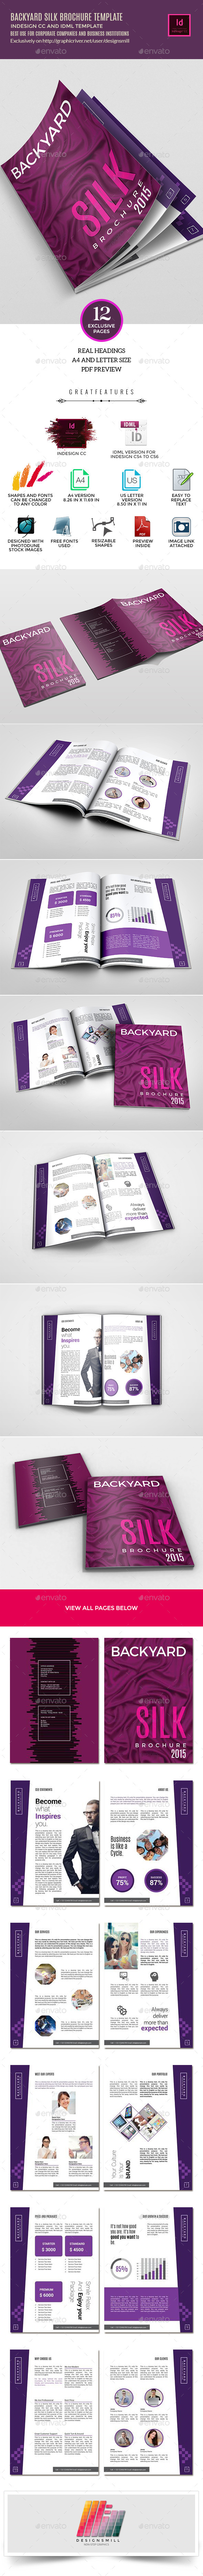 GraphicRiver Backyard Silk Brochure Template 10281228